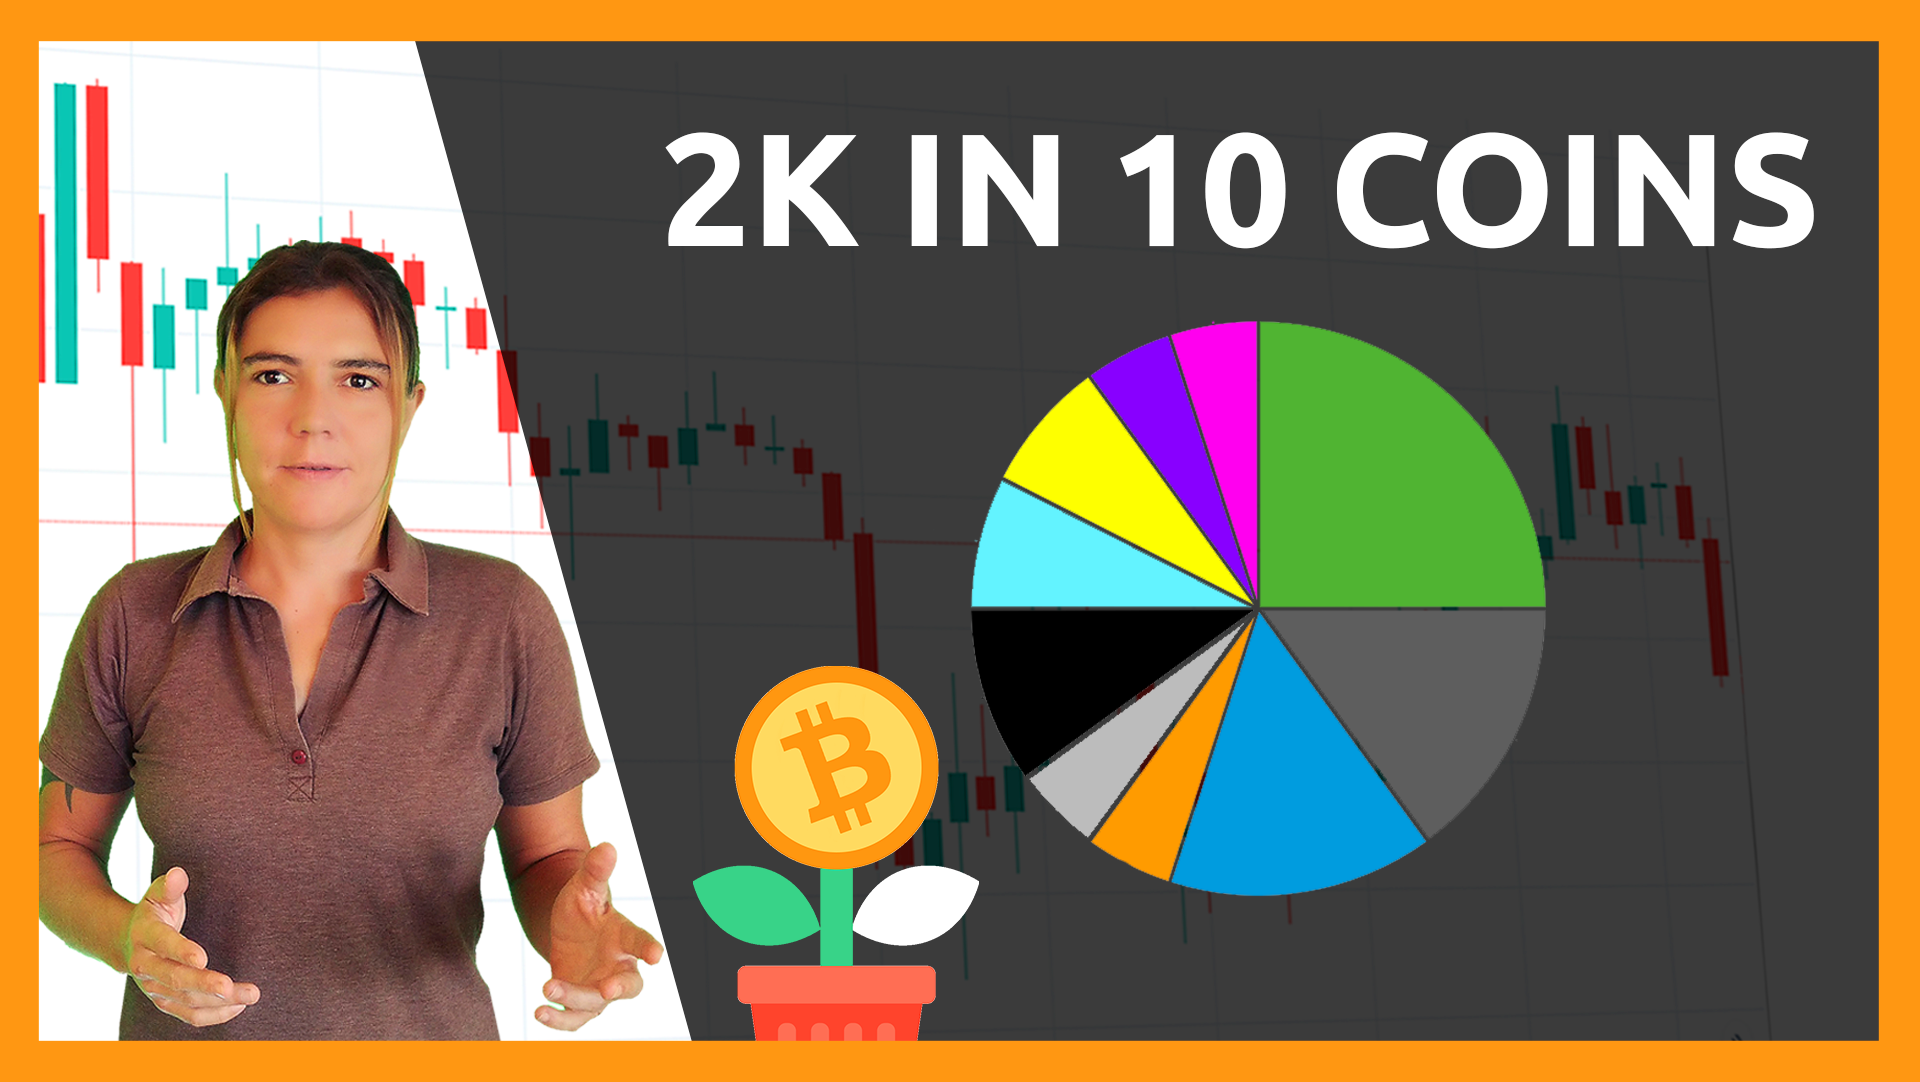 Video 1 of 3 of the 2019 hodl series (2k in 10 coins)